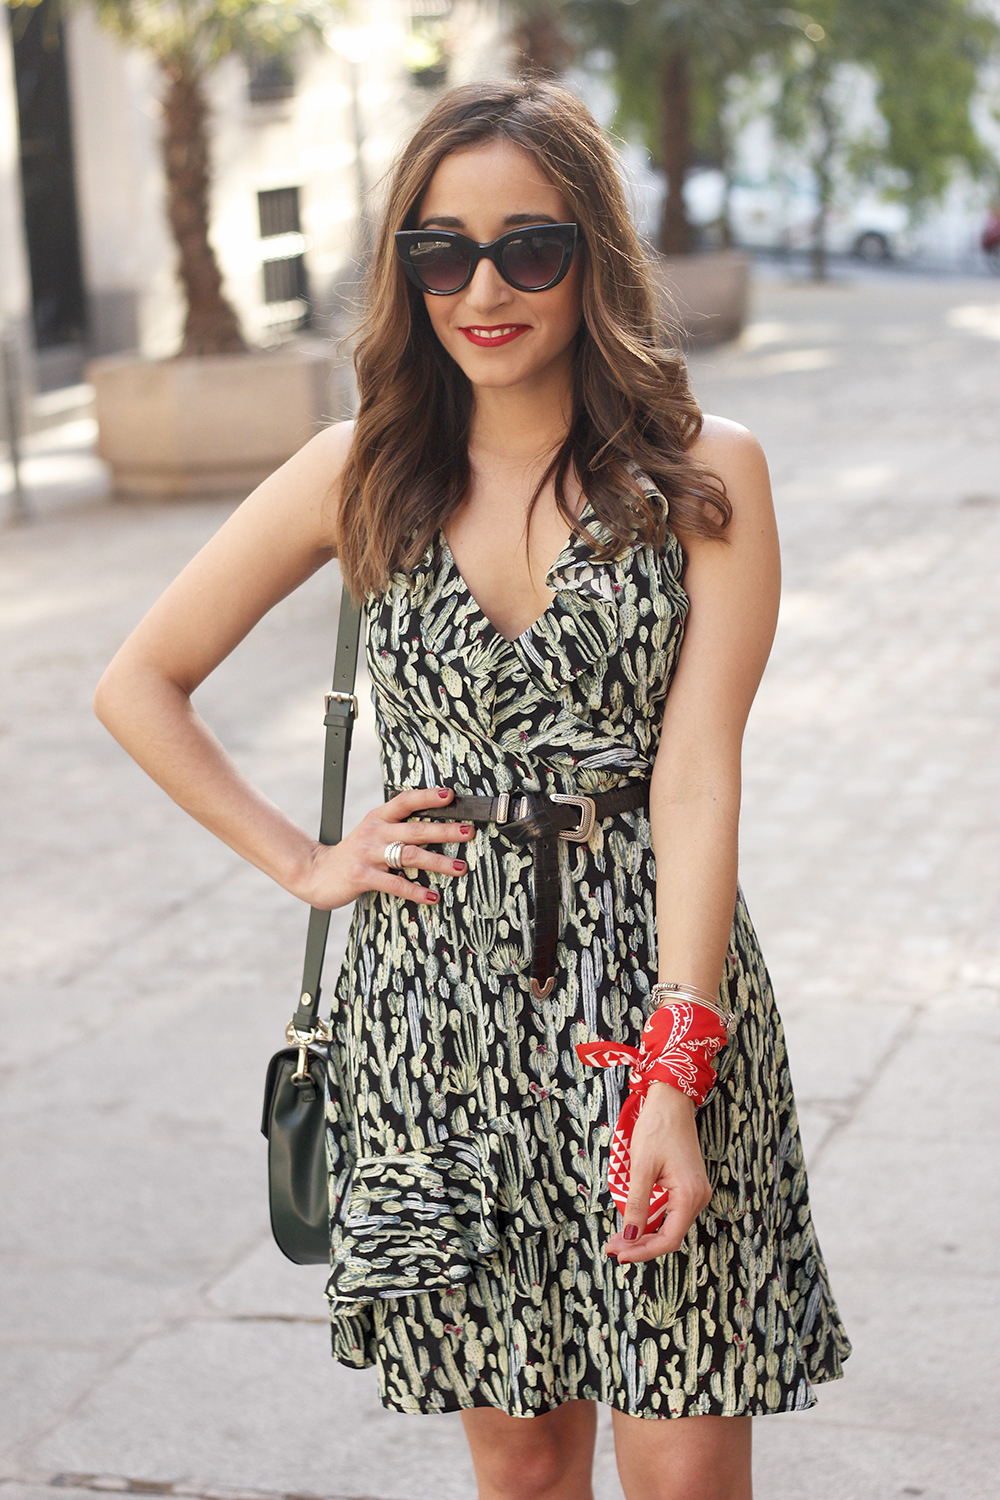 summer dress with cactus prints black sandals sunnies outfit style 01